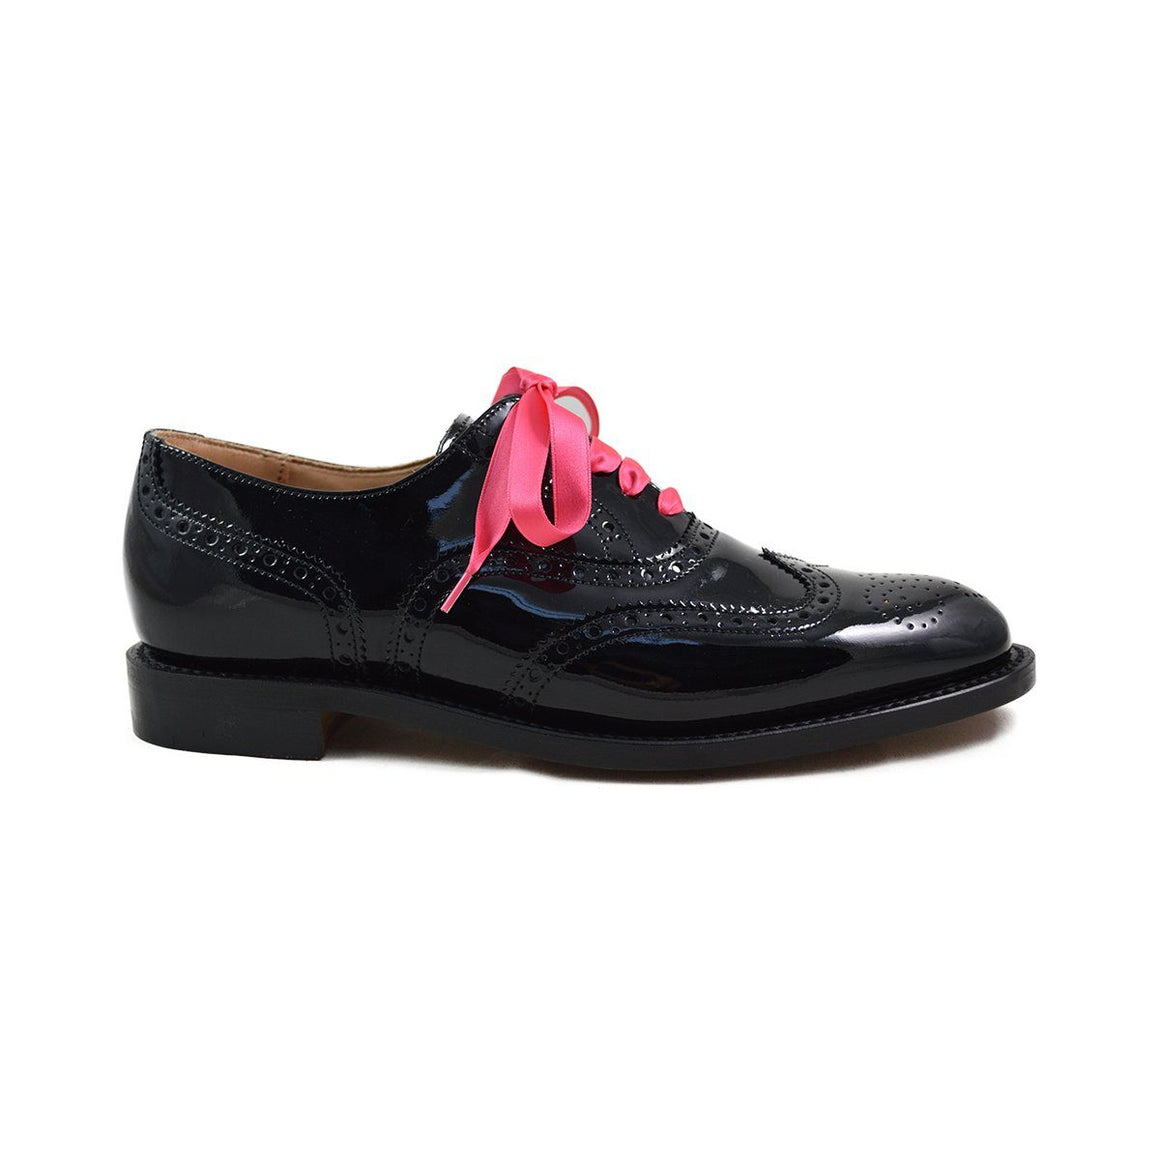 NPS Womens Charlotte Black Patent Brogue Shoes